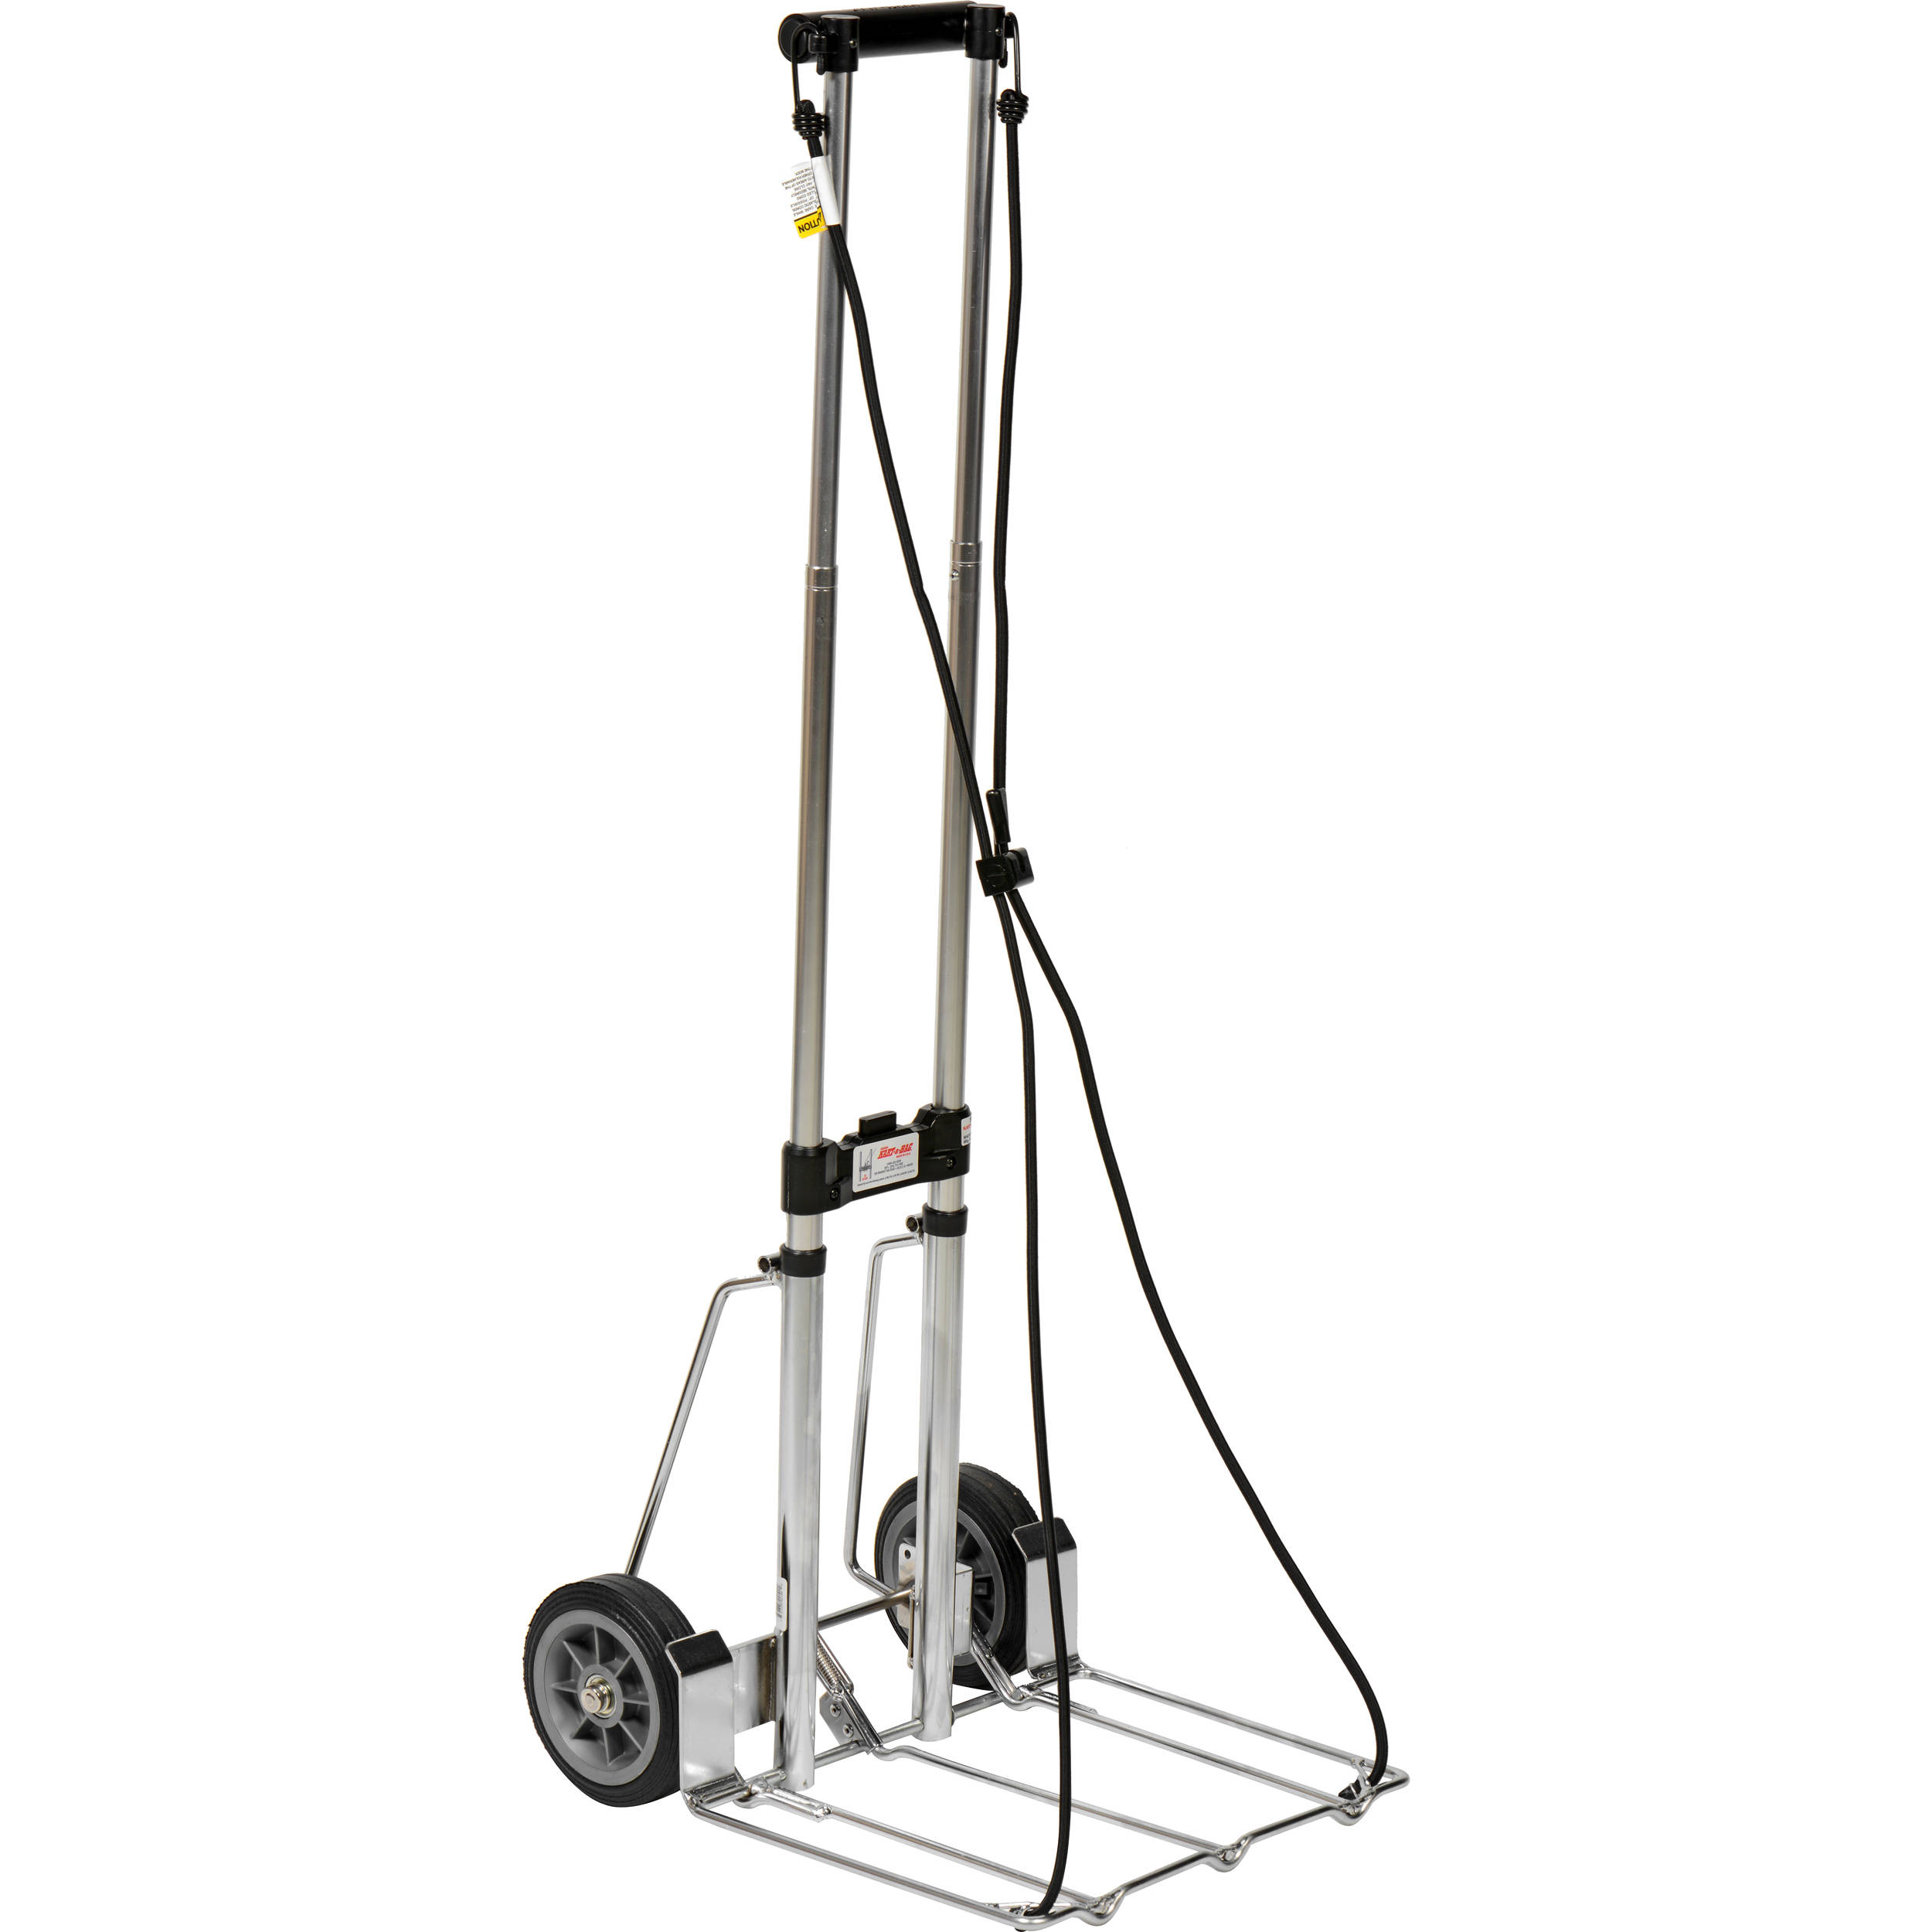 Remin Super 600 Cart